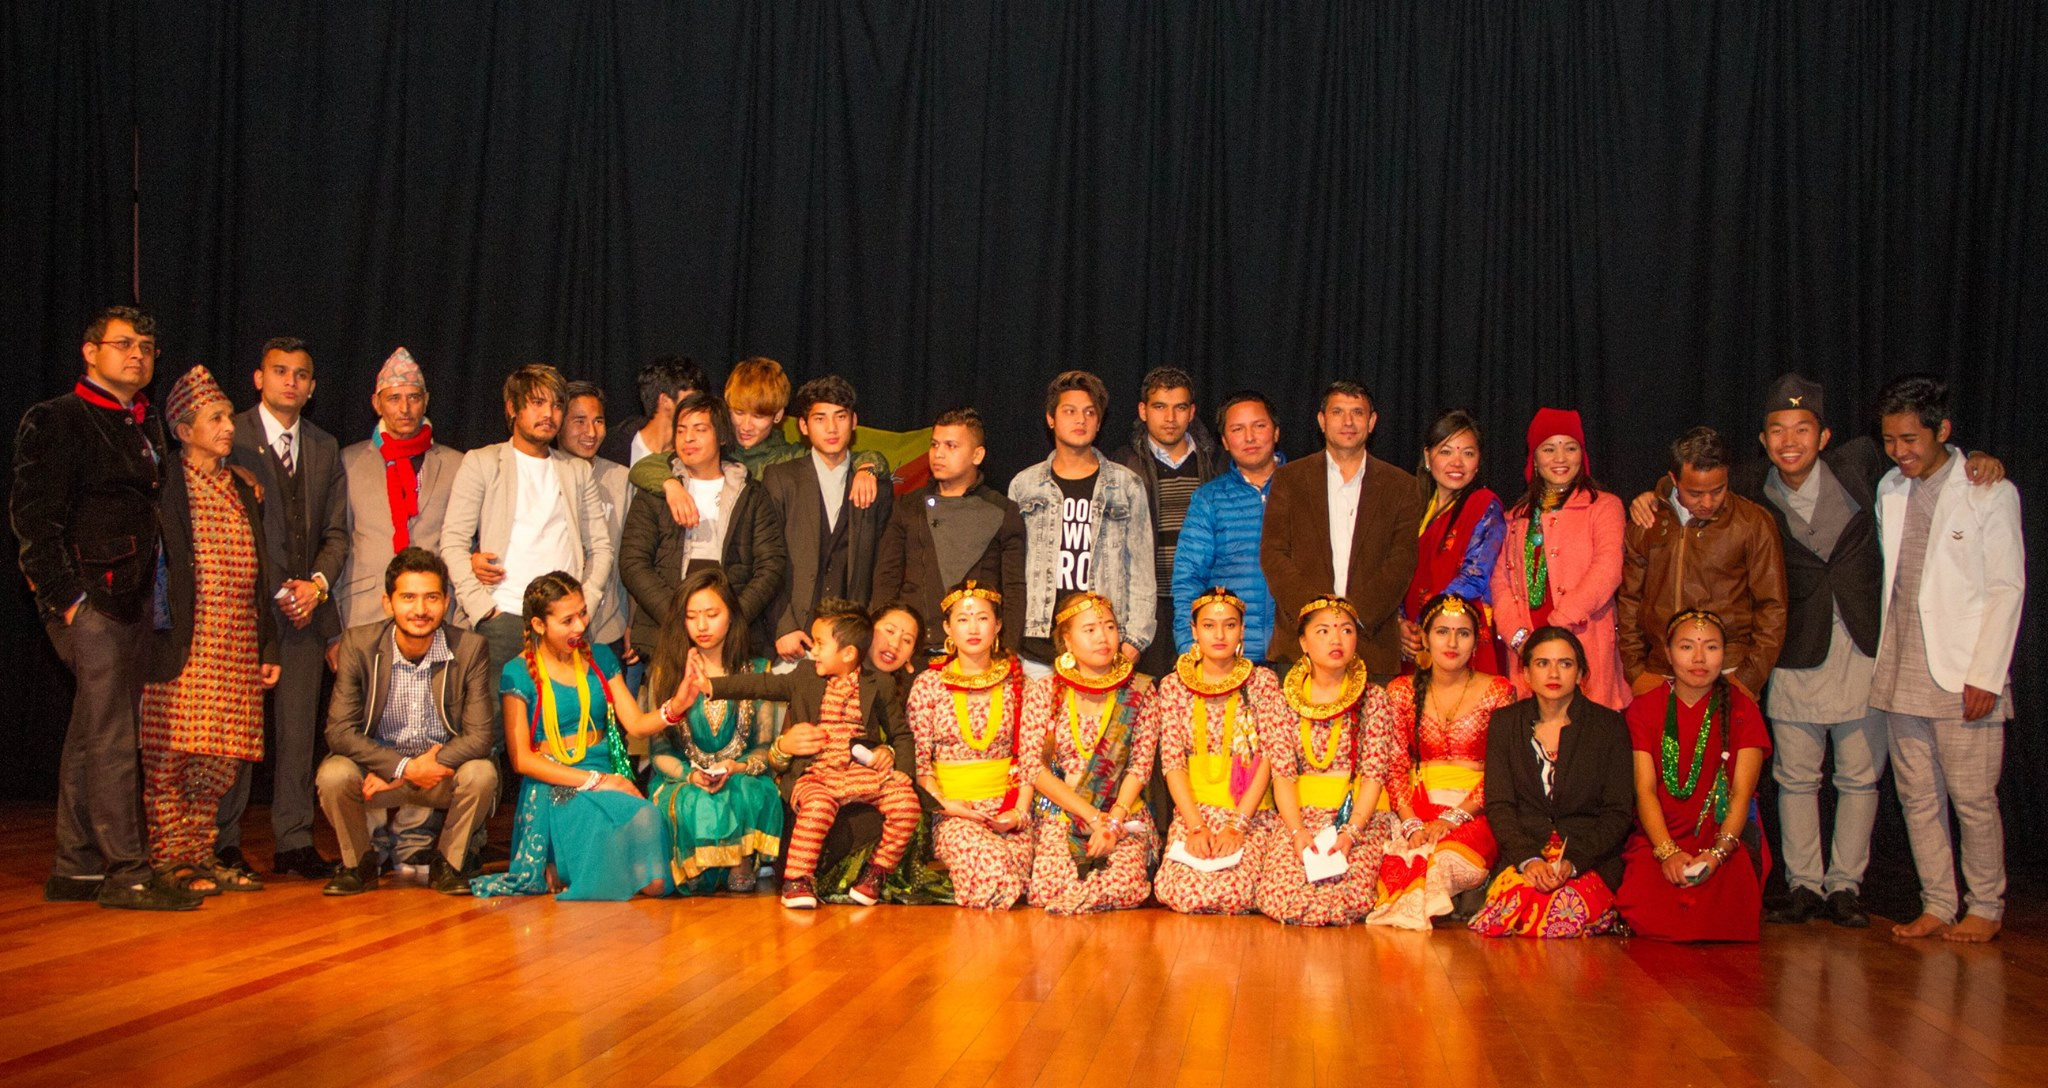 The Bhutanese Society of Christchurch (BSC), which organised its own Teej festival on September 3, had also organised the first-ever Bhutanese Nite [Bhutani Sanjh] in Christchurch recently. Held at Elmwood School Auditorium, the Nite was attended by over 300 Bhutanese living in the Garden City. (picture courtesy: BSC)